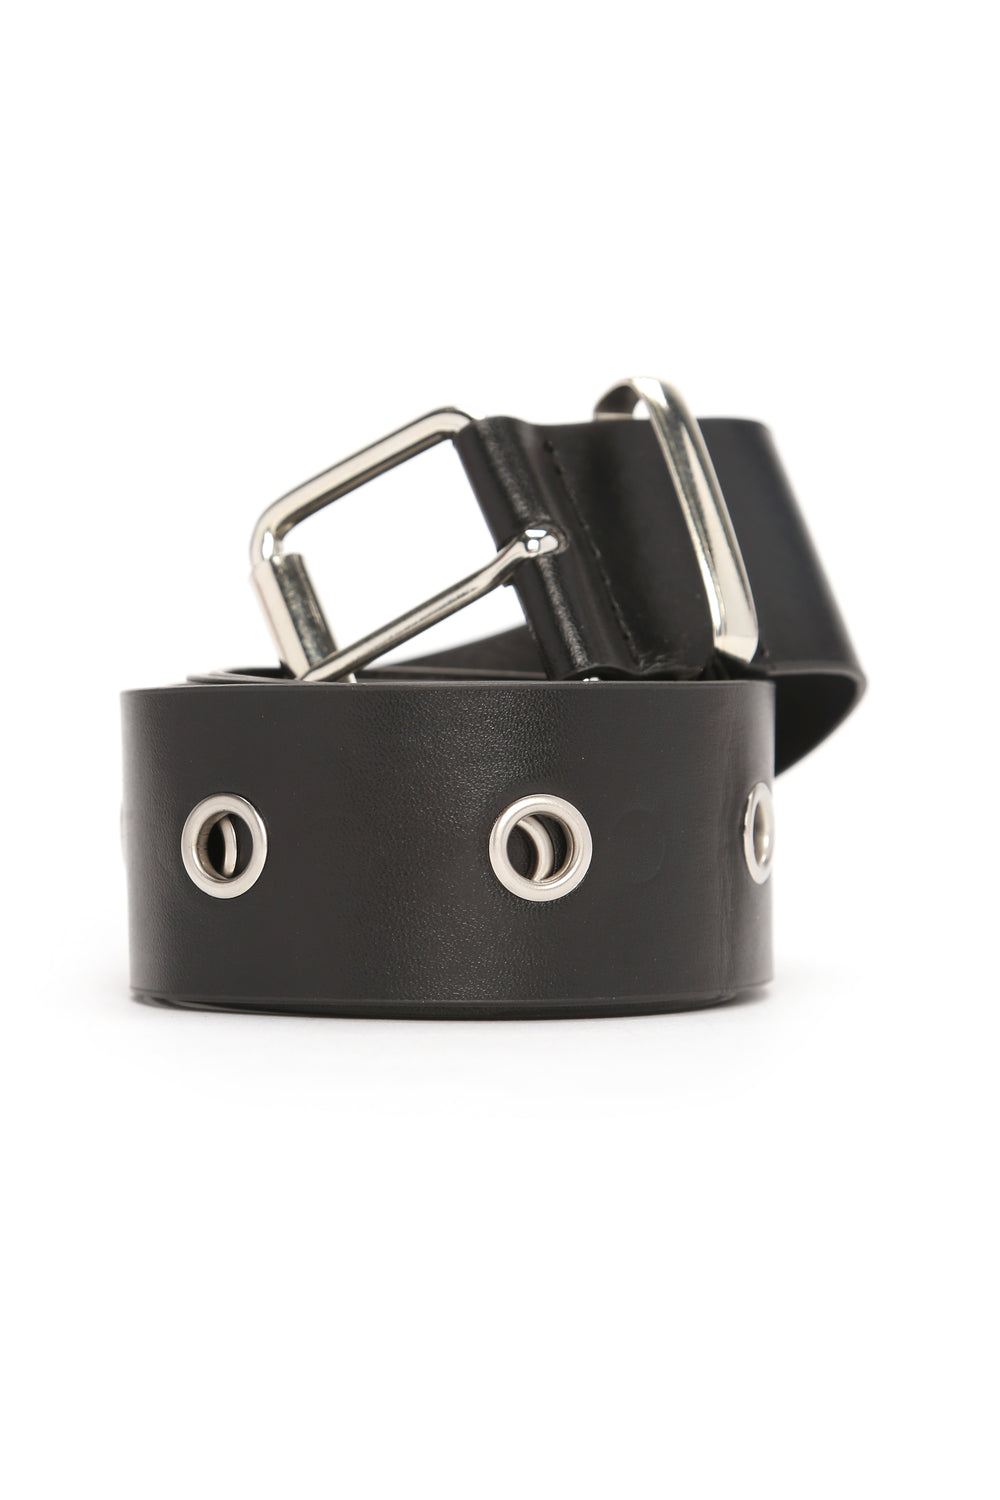 Hole Me Closer Belt - Black/Silver